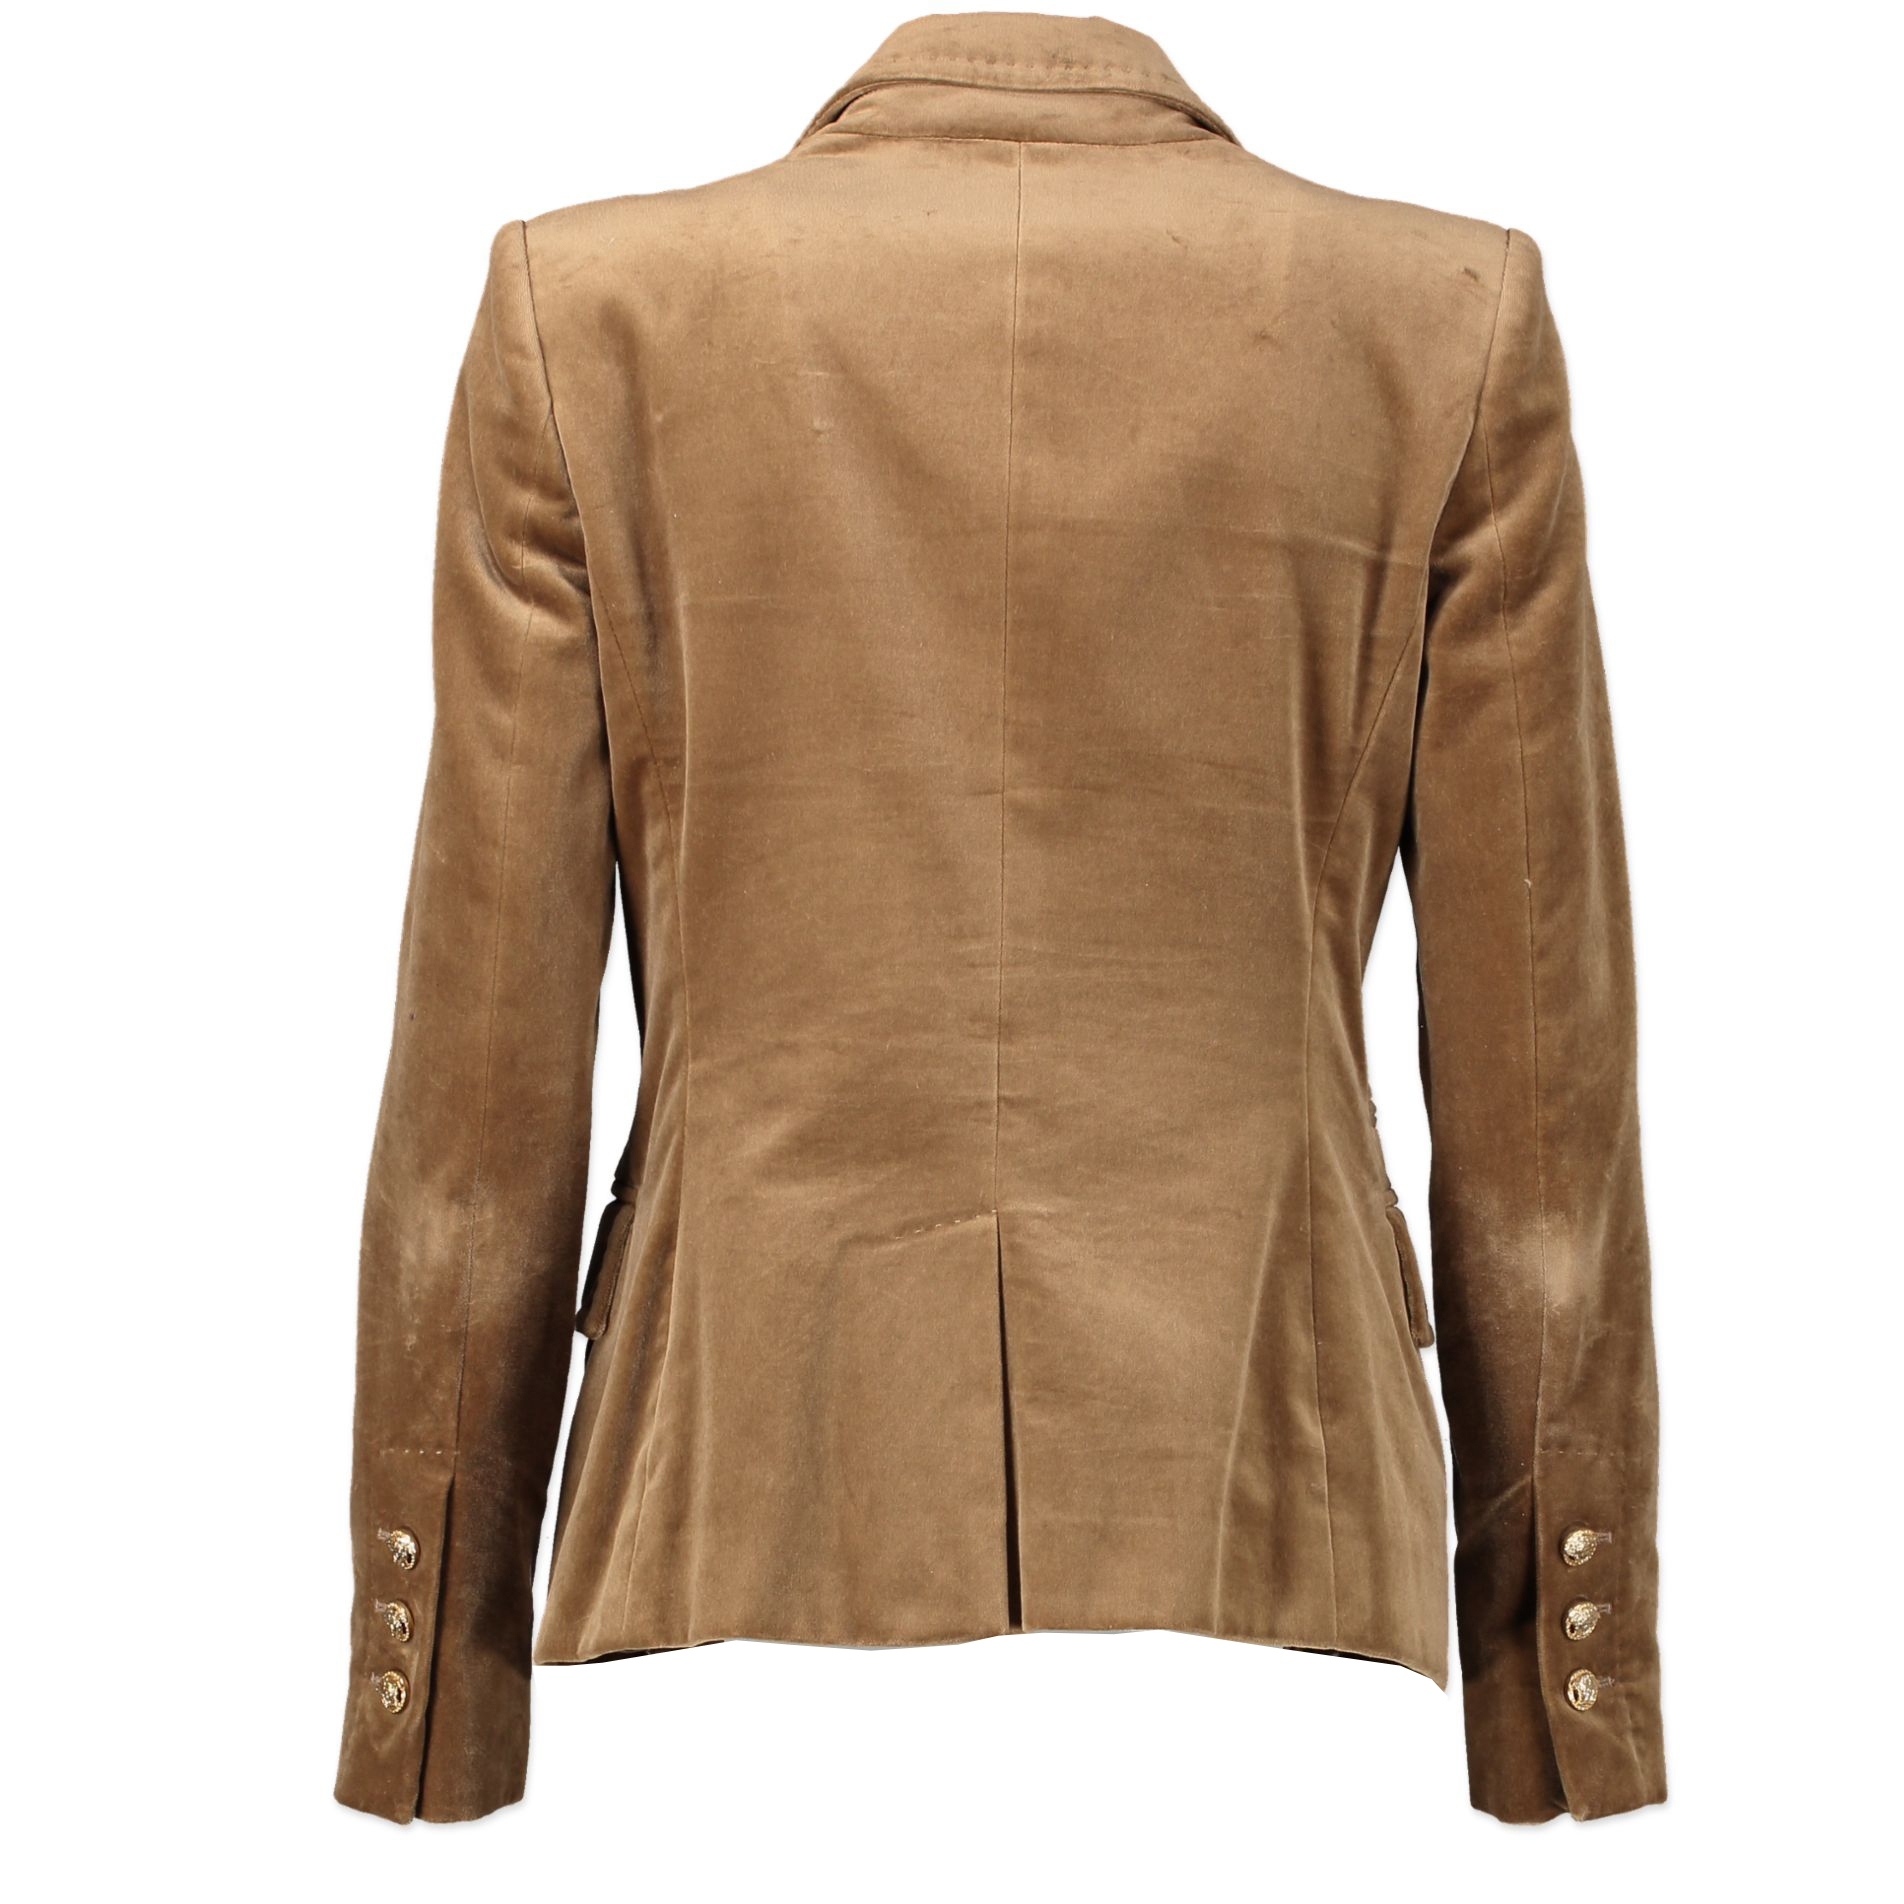 Versace Light Brown Velvet Blazer - size 38